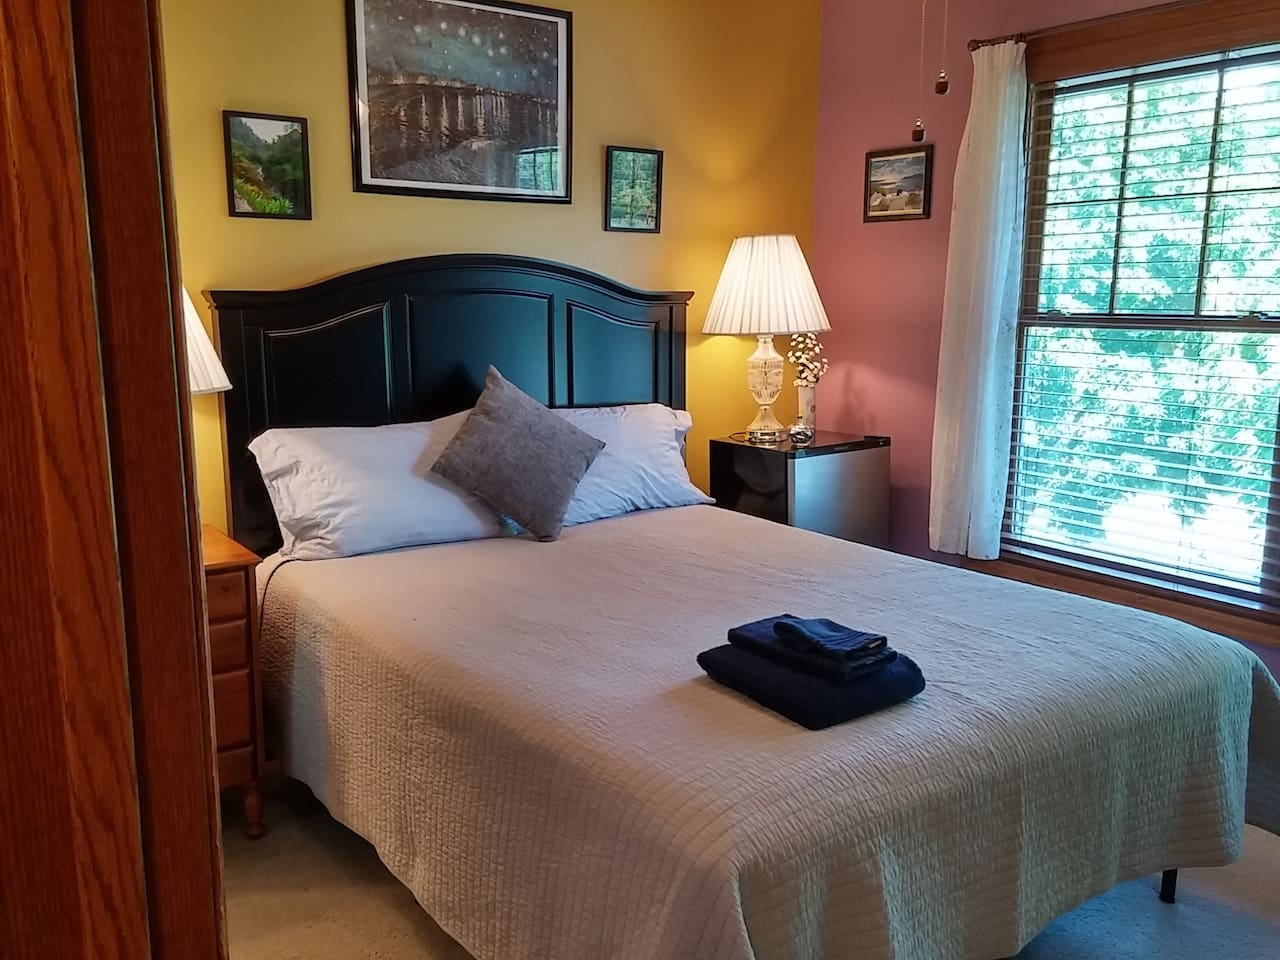 Your bedroom is on the second floor (mini-fridge to the right of the bed), with a large window that looks out on our front yard and the quiet street beyond.